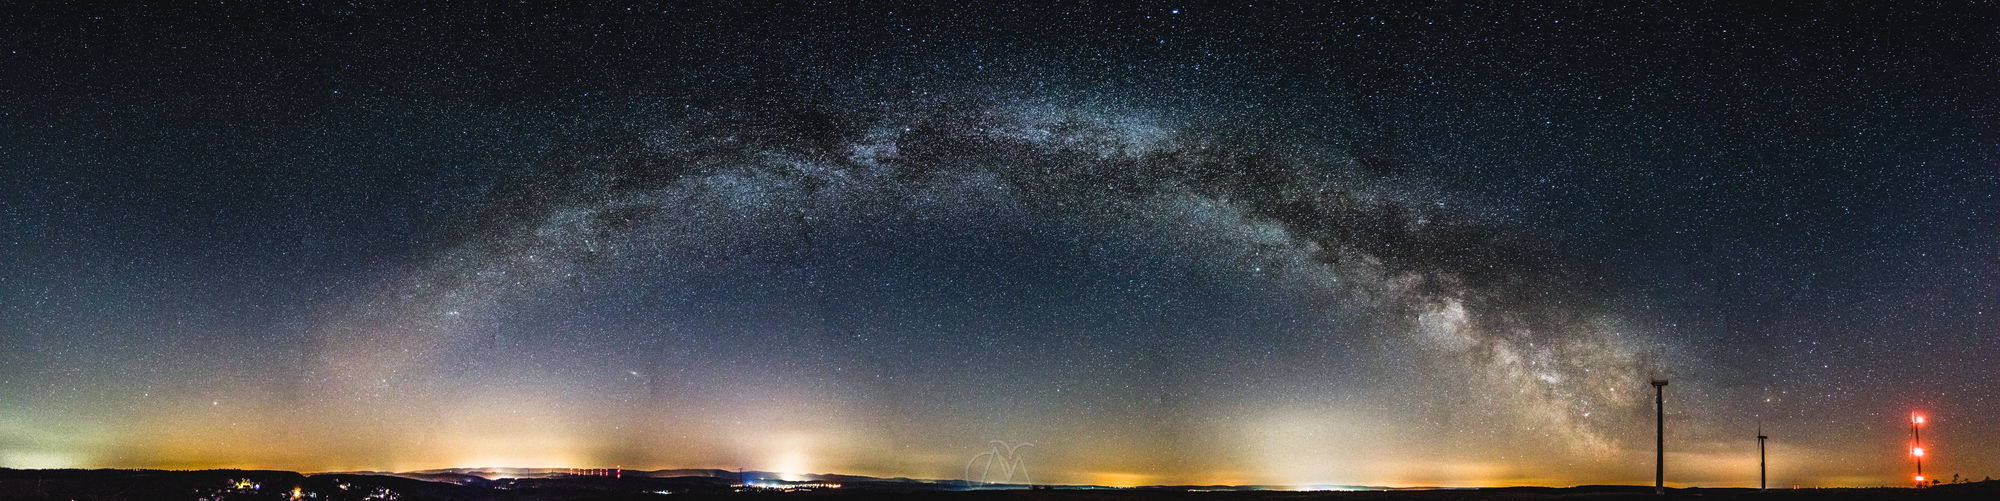 This photo shows a panorama of the whole Milky Way arc consisting of 28 portrait shoots taken with my Nikon kit lens at 18mm and f/3.5. Astronomy Astrophotography Milky Way Milkywaygalaxy Nature Night Outdoors Sky Space Star - Space first eyeem photo